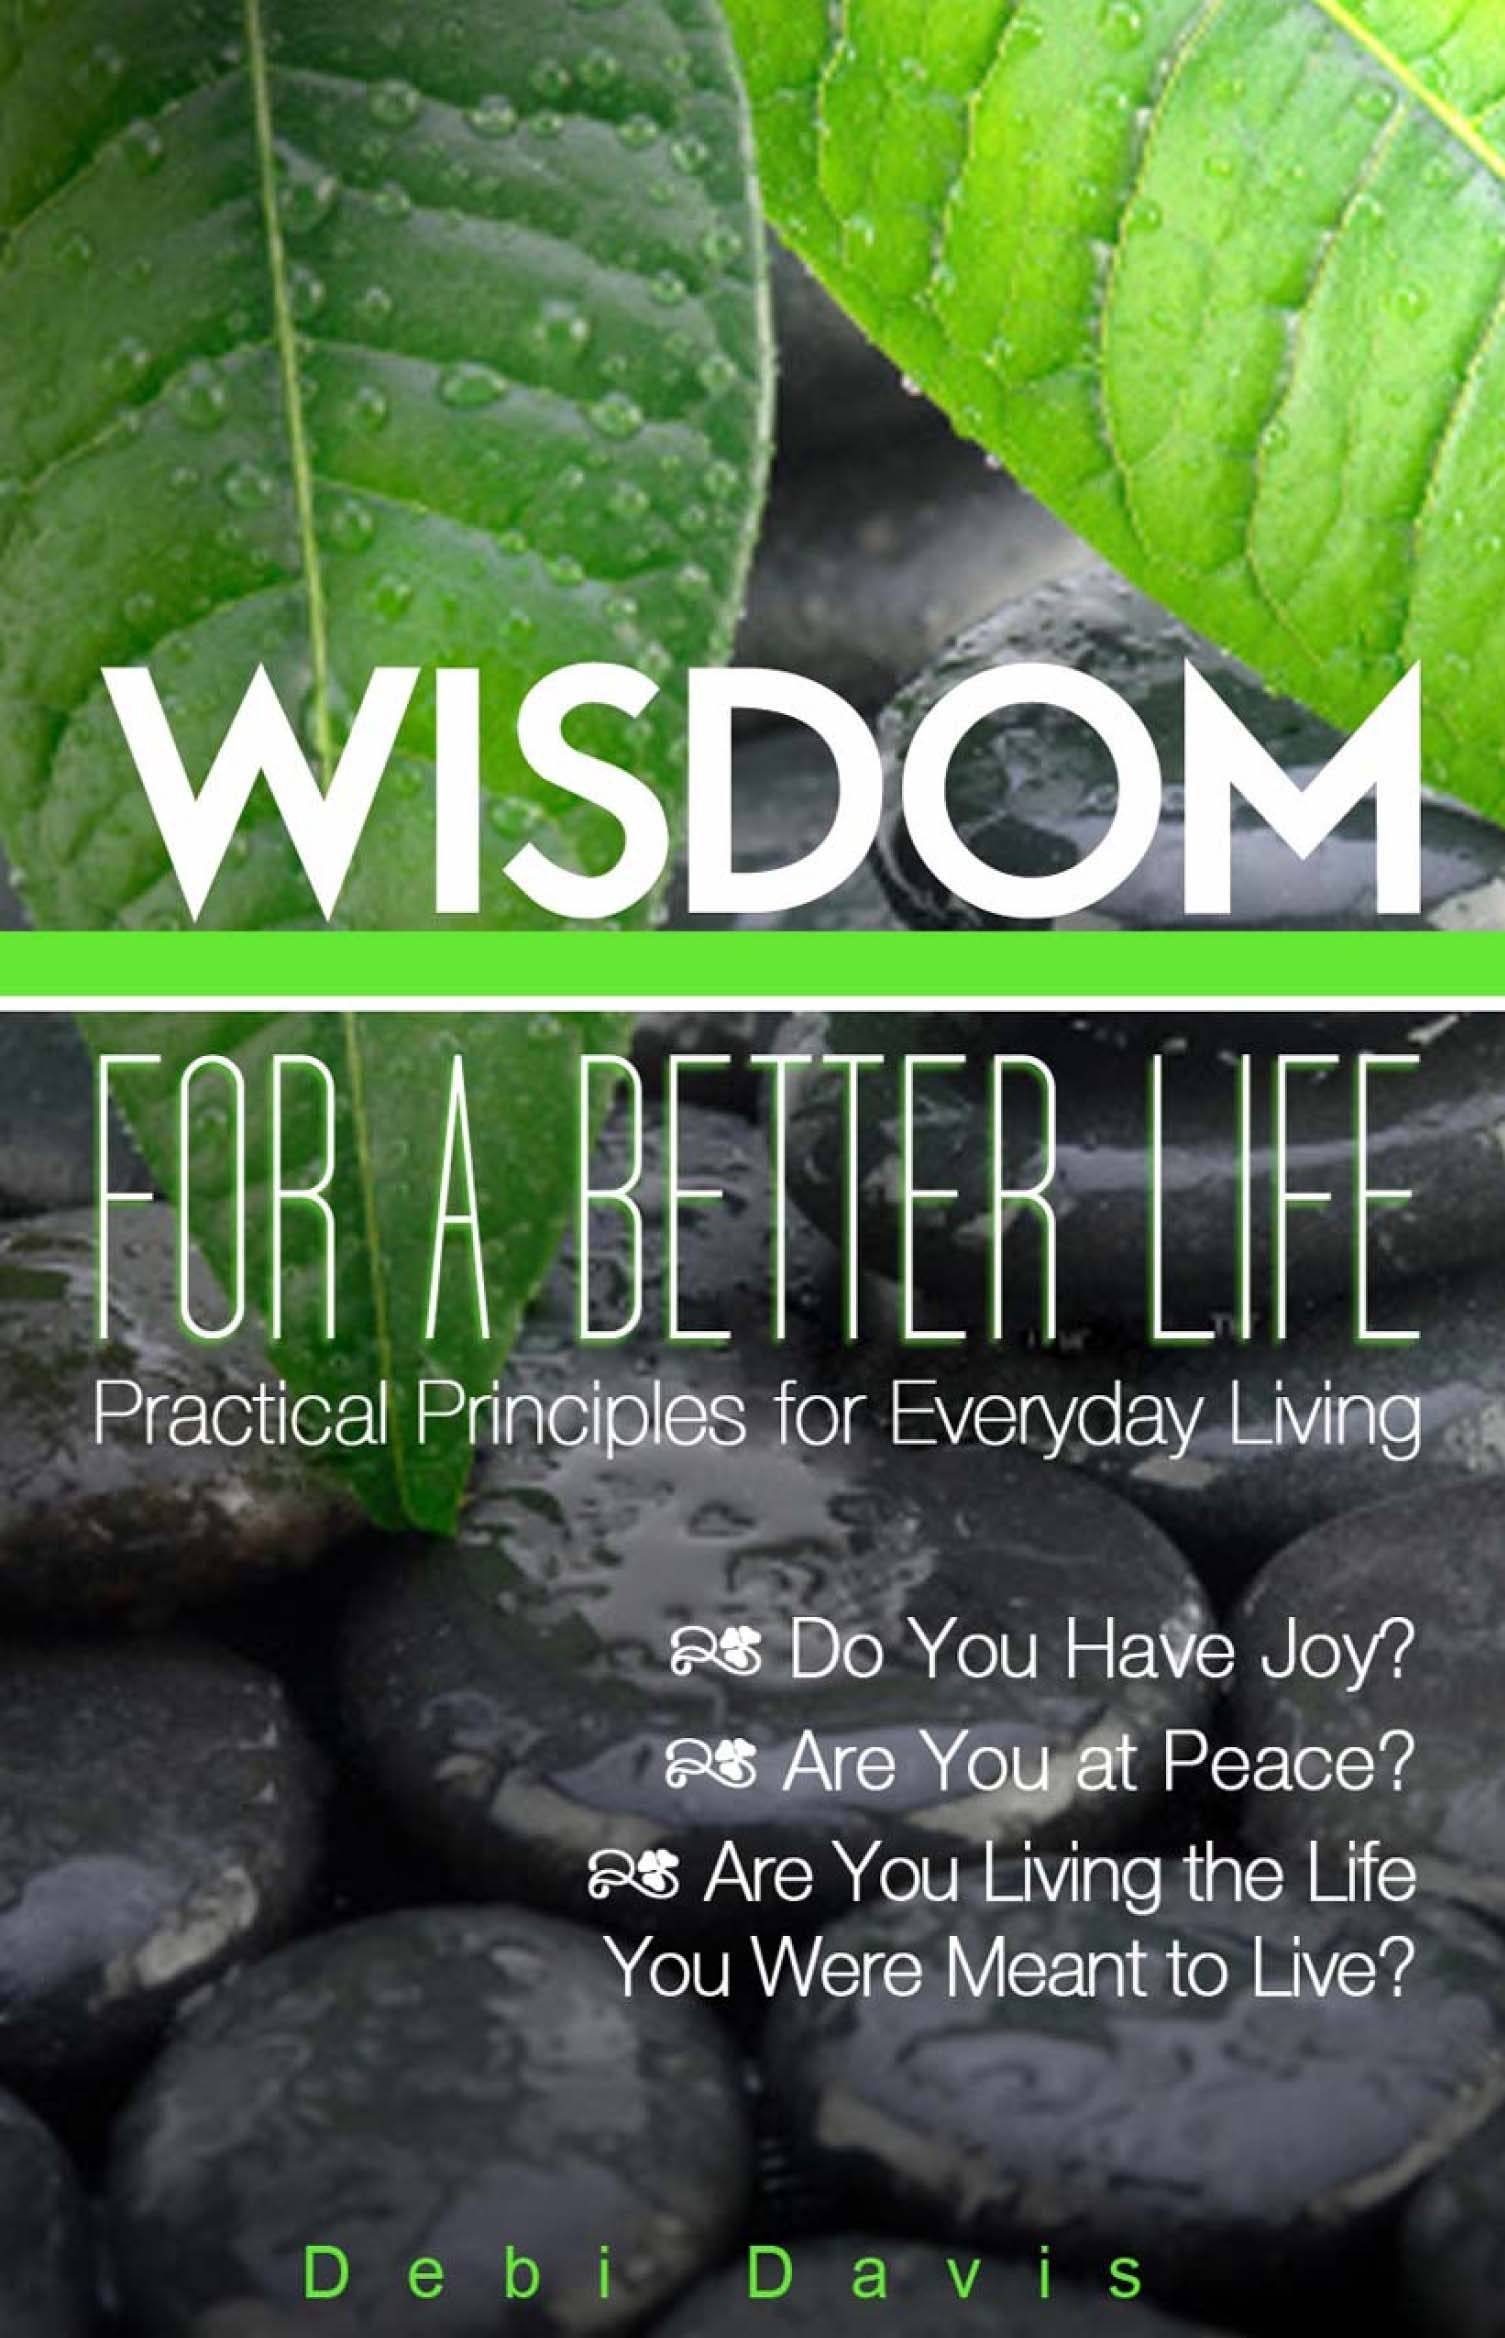 Wisdom for a Better Life:Practical Principles for Everyday Living